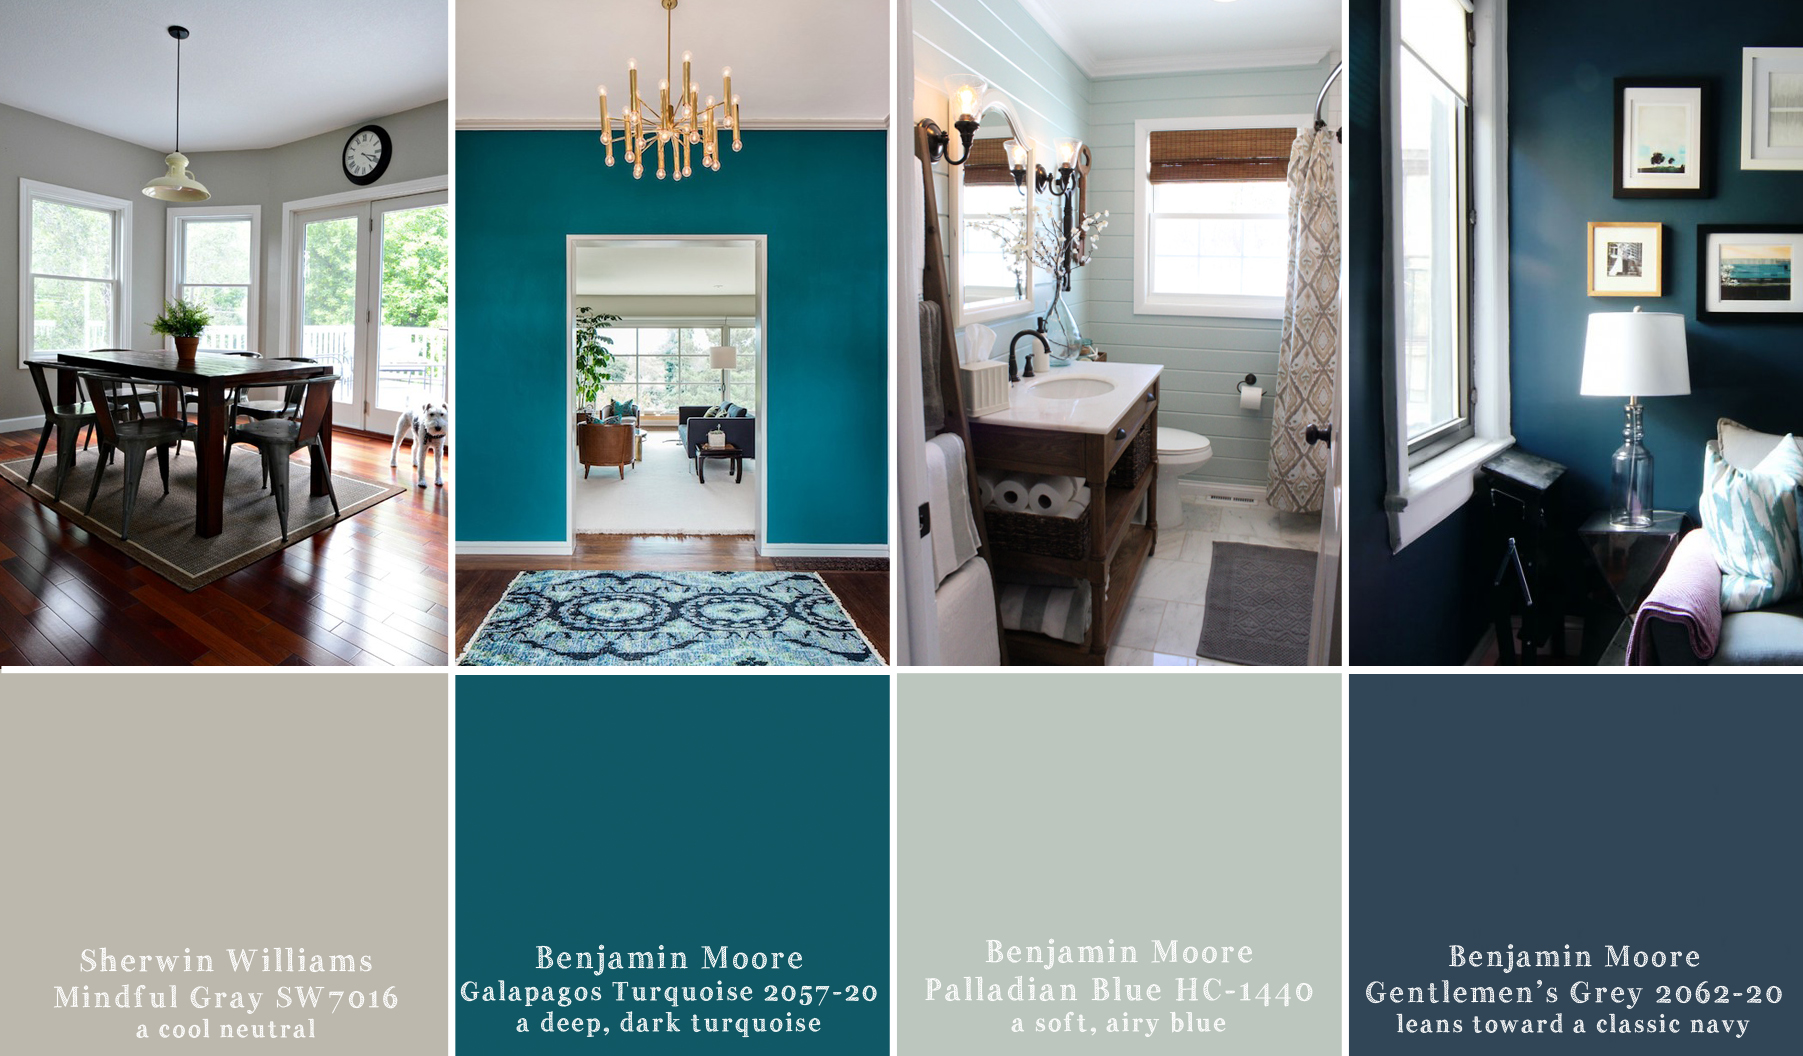 S. Williams Mindful Gray | B. Moore Galapagos Turquoise | B. Moore Palladian Blue | B.Gentlemen's Grey  Sources:1.  Decor and the Dog 2.  Decor Pad 3.  12 Oaks 4.  So Happy Home